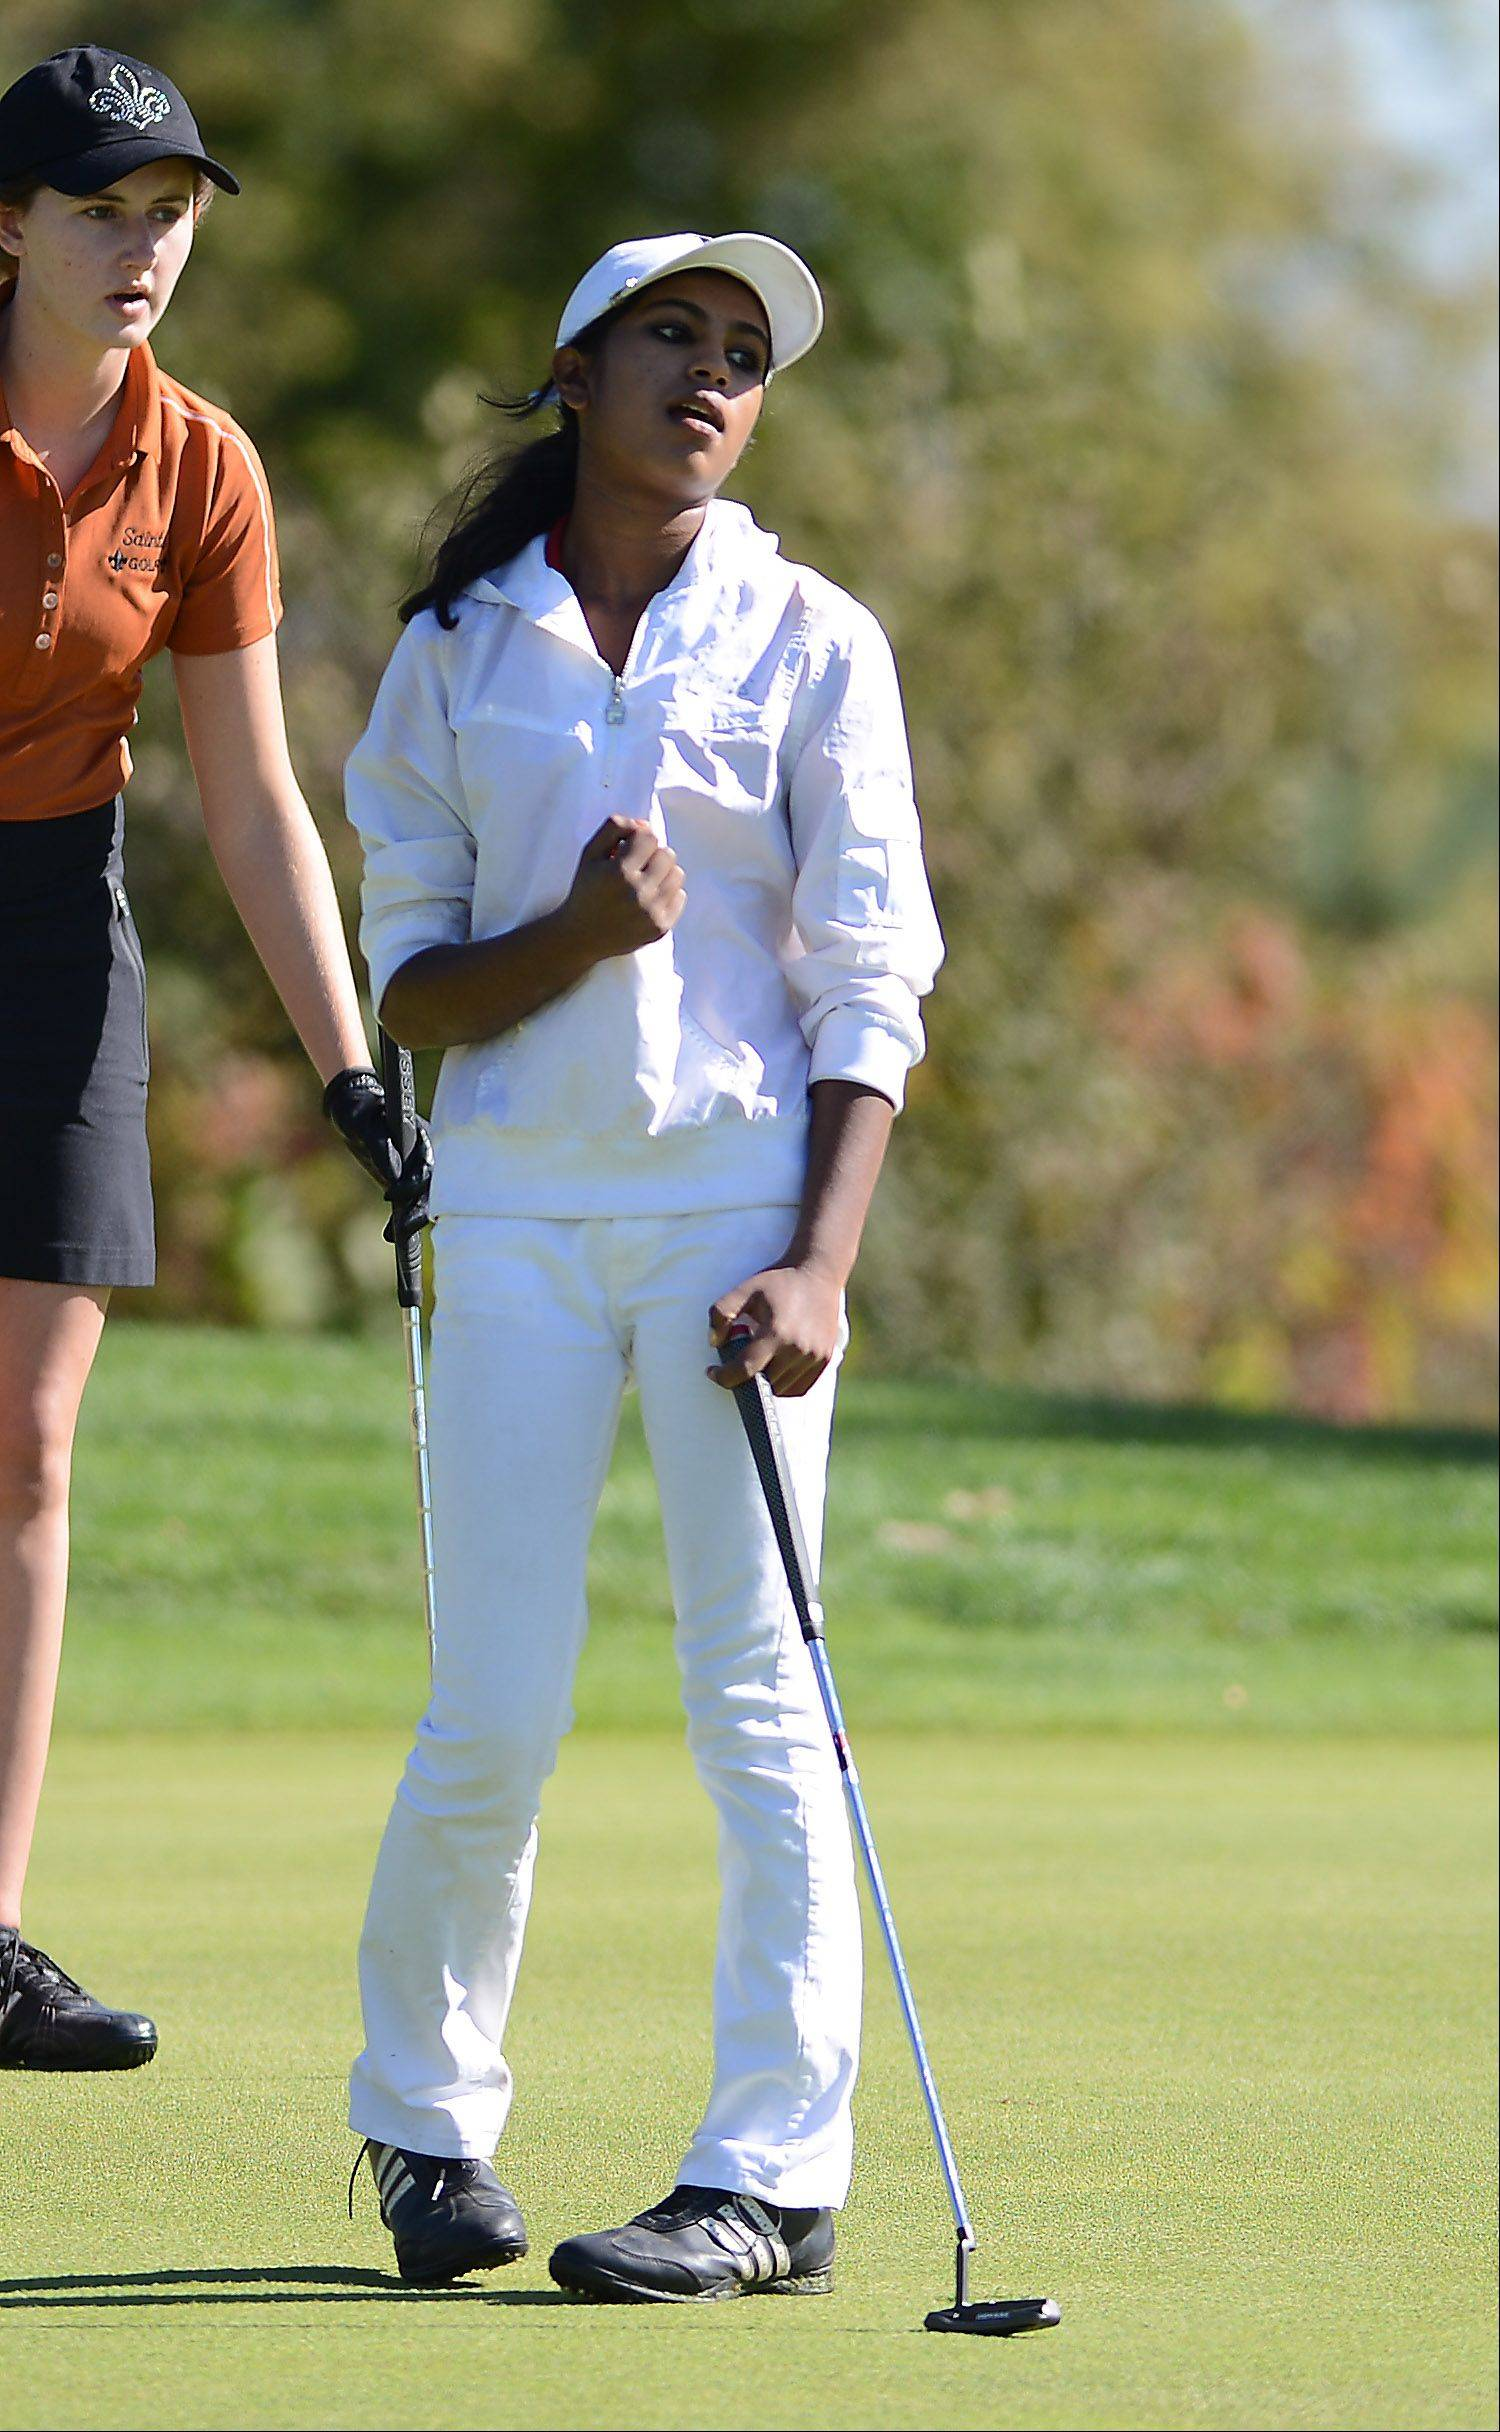 Barrington's Reena Sulkar pumps her fist after draining a 30ish foot putt on the first hole during Wednesday's Prairie Ridge regional golf action at Prairie Isle golf course in Crystal Lake